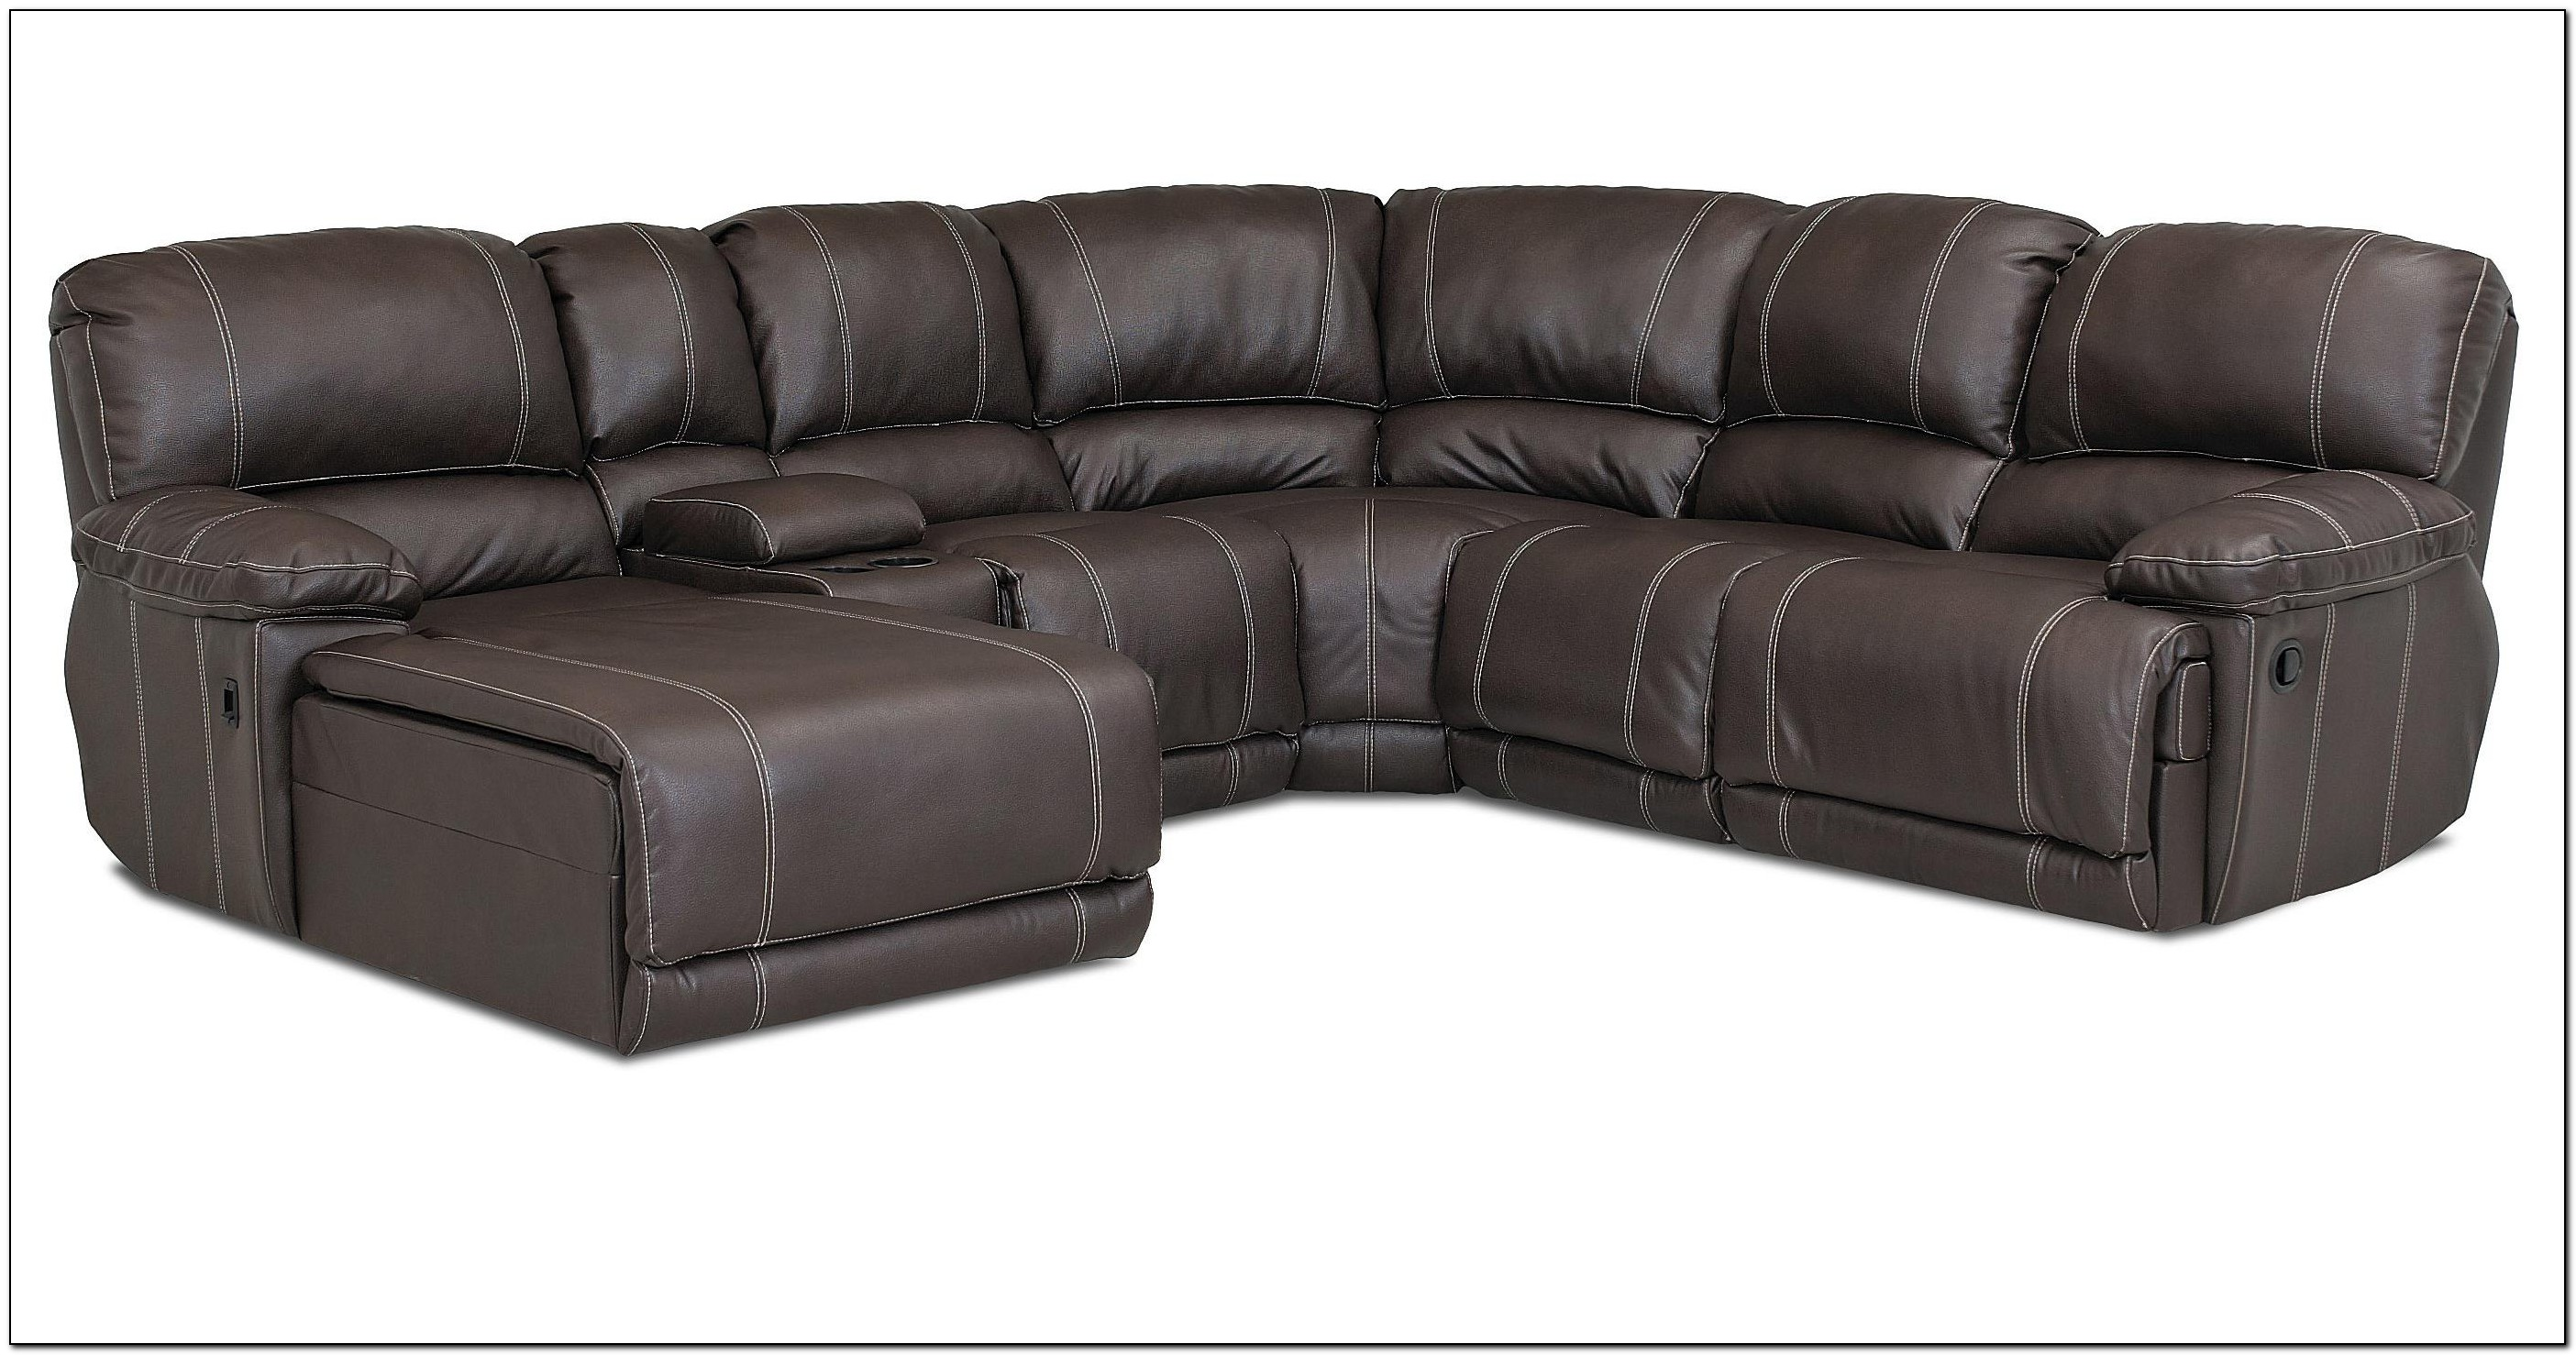 Sectional sofa with chaise lounge and recliner download for Chaise and recliner